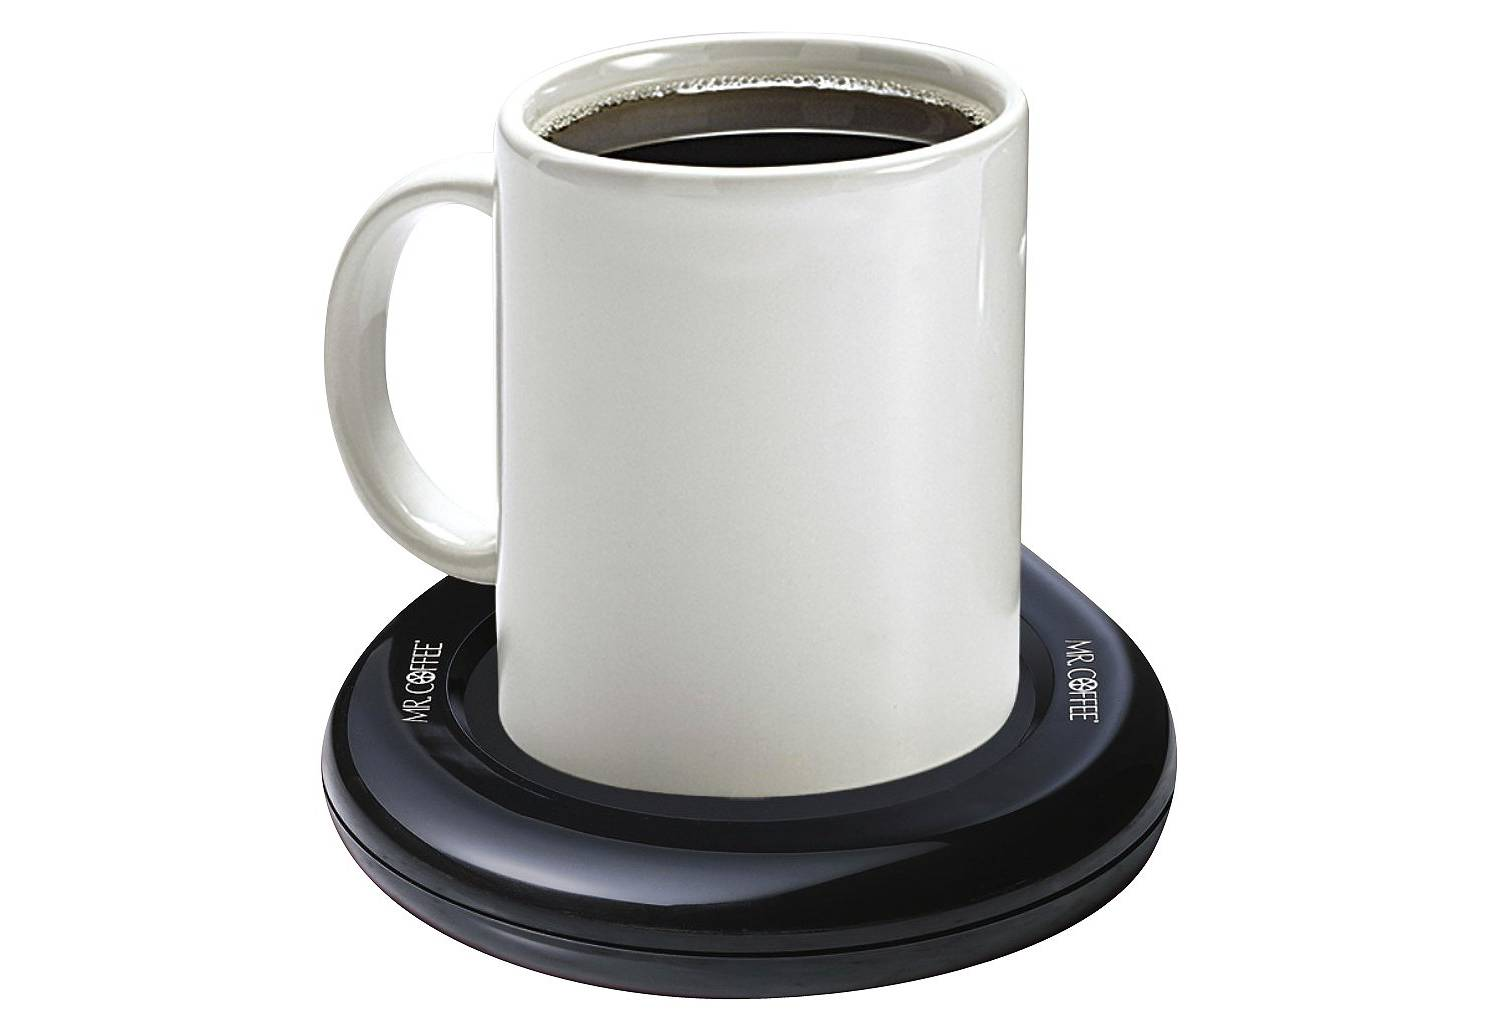 Gifts for Impossible People | Mug Warmer, $8 at Target